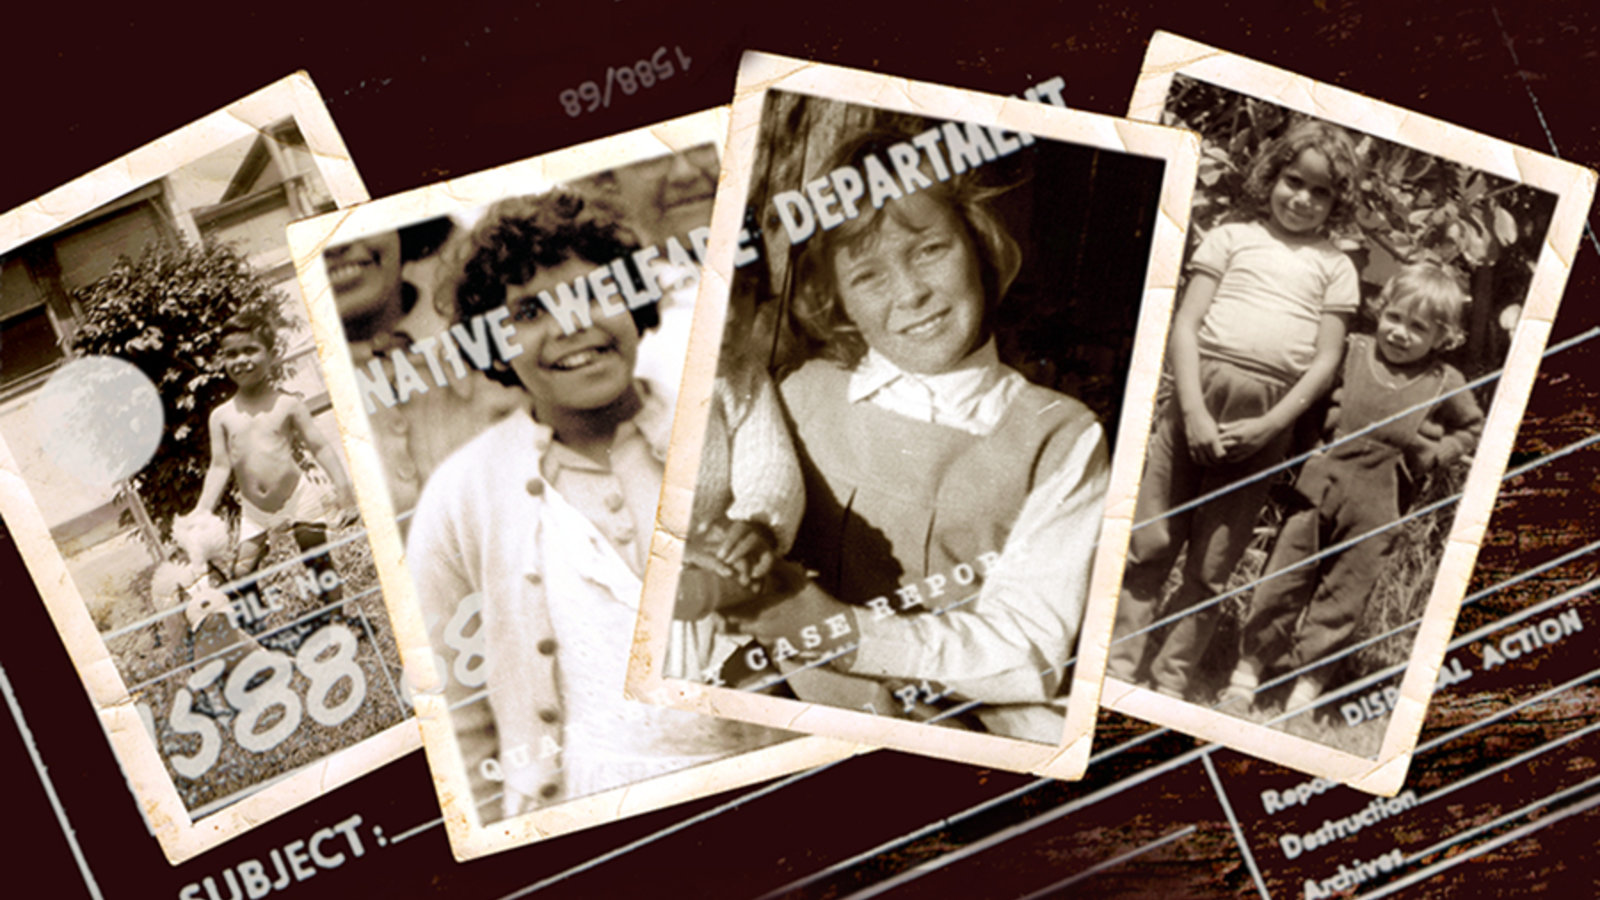 Why Me? - Stolen Generations